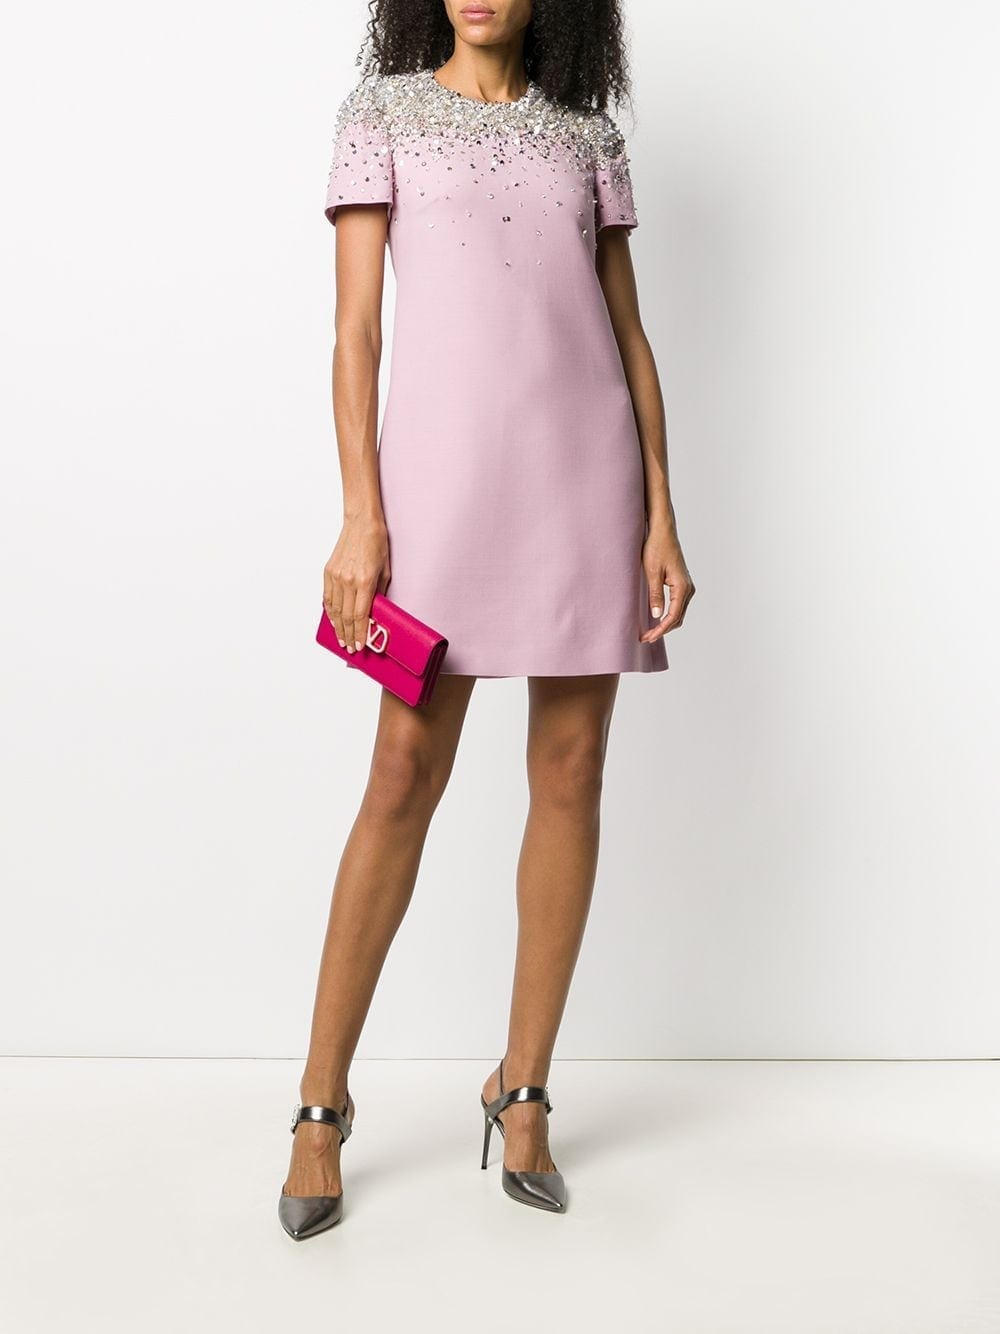 VALENTINO Sequin-embellished Mini Dress